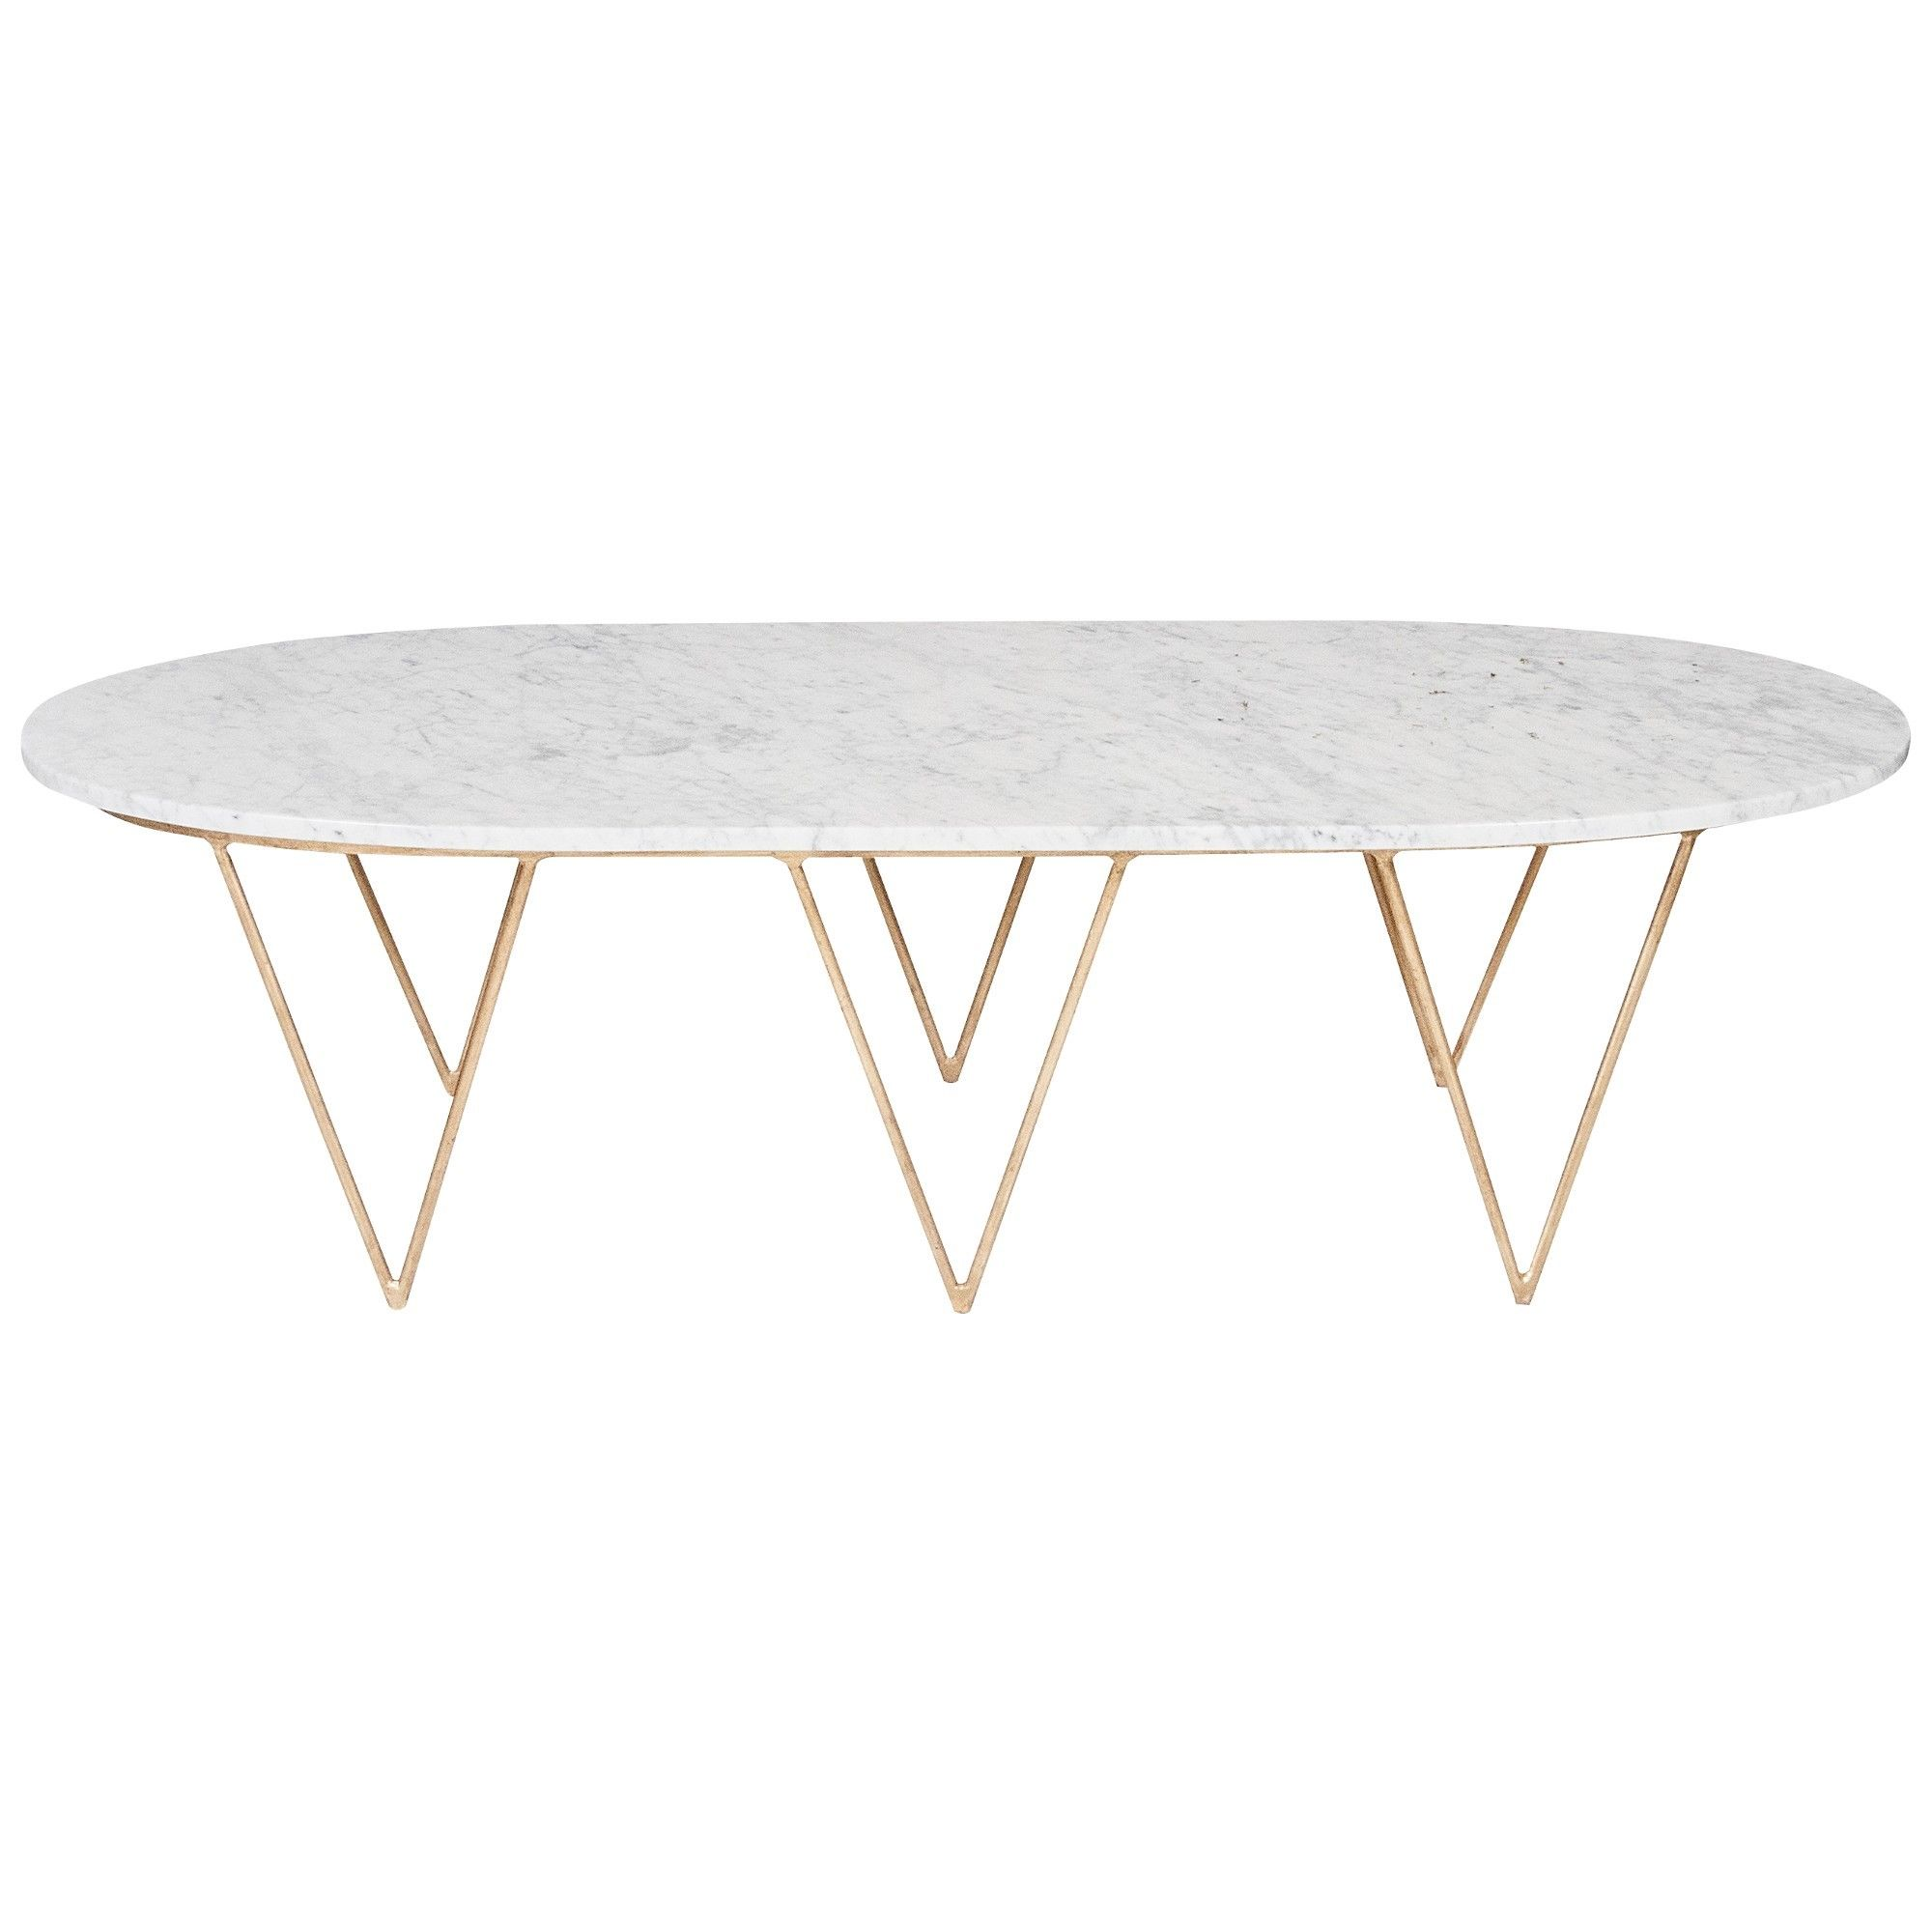 Furniture Oval Unique White Marble Top Coffee Table Ideas For Living Room Furniture Sets Full Hd Wallpaper Couchtisch Design Wohnzimmertische Couchtisch Weiss